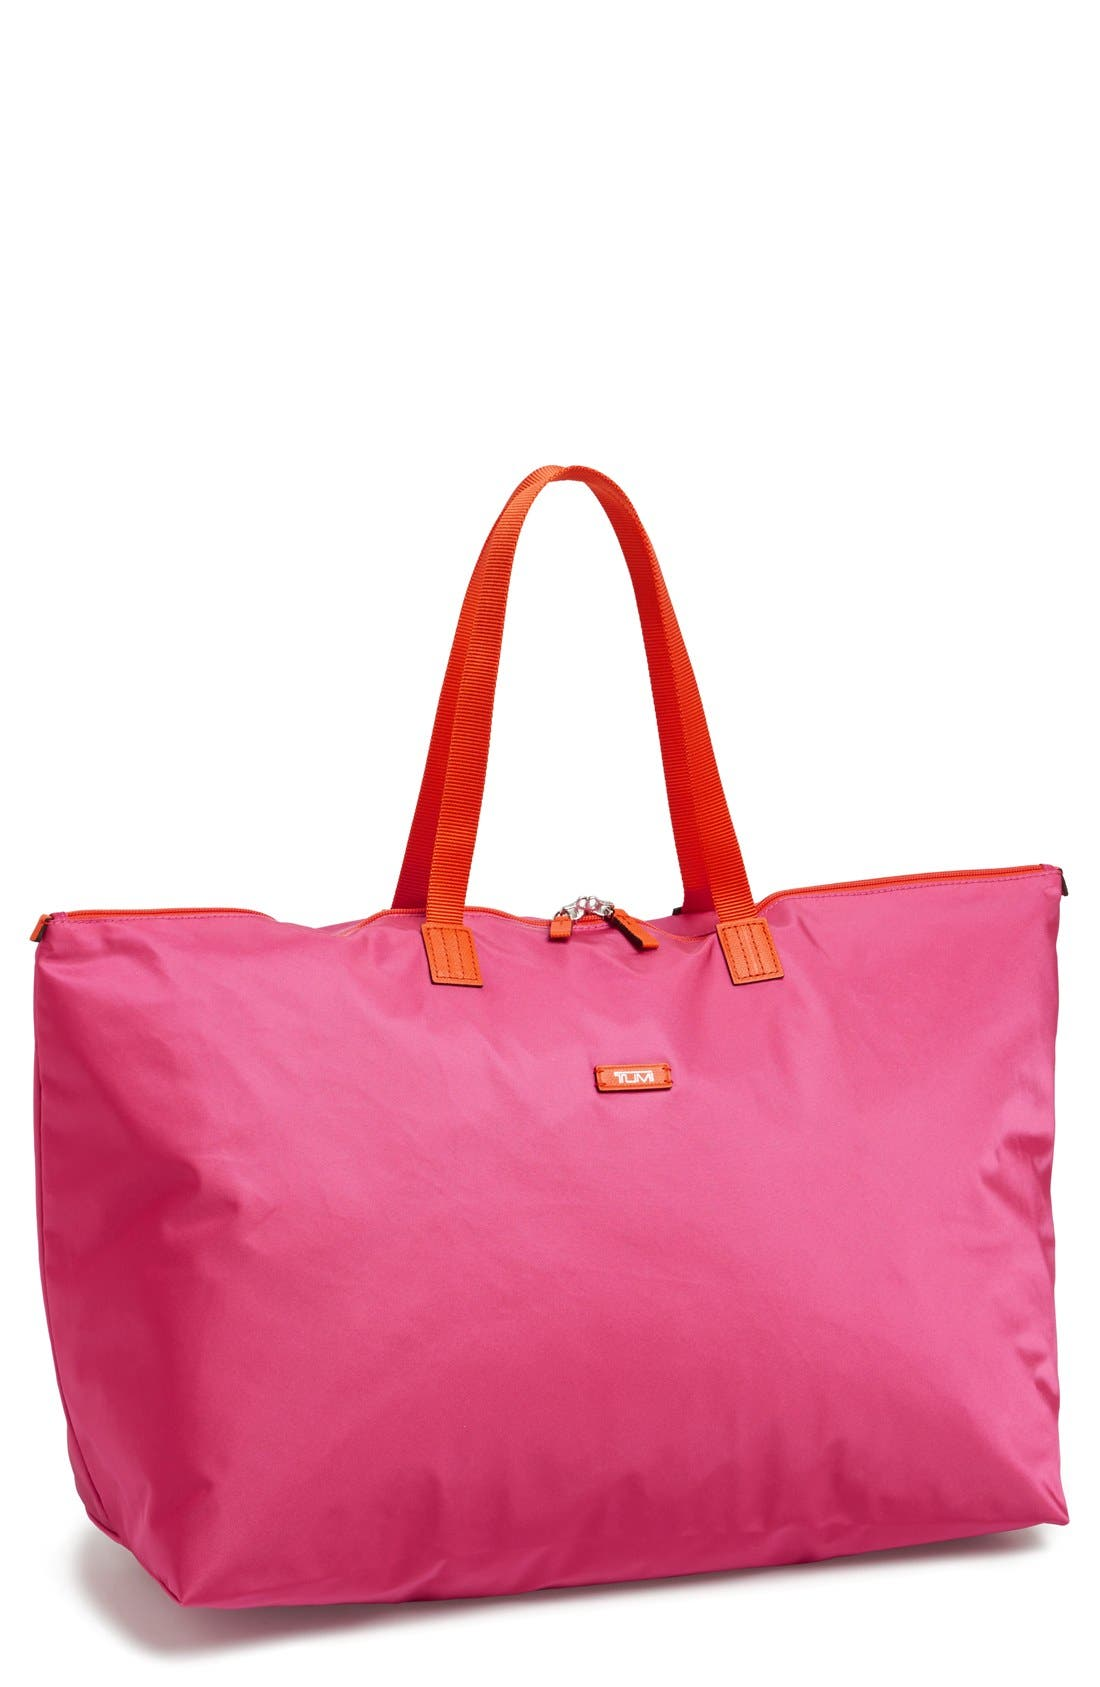 Main Image - Tumi 'Just in Case' Packable Tote